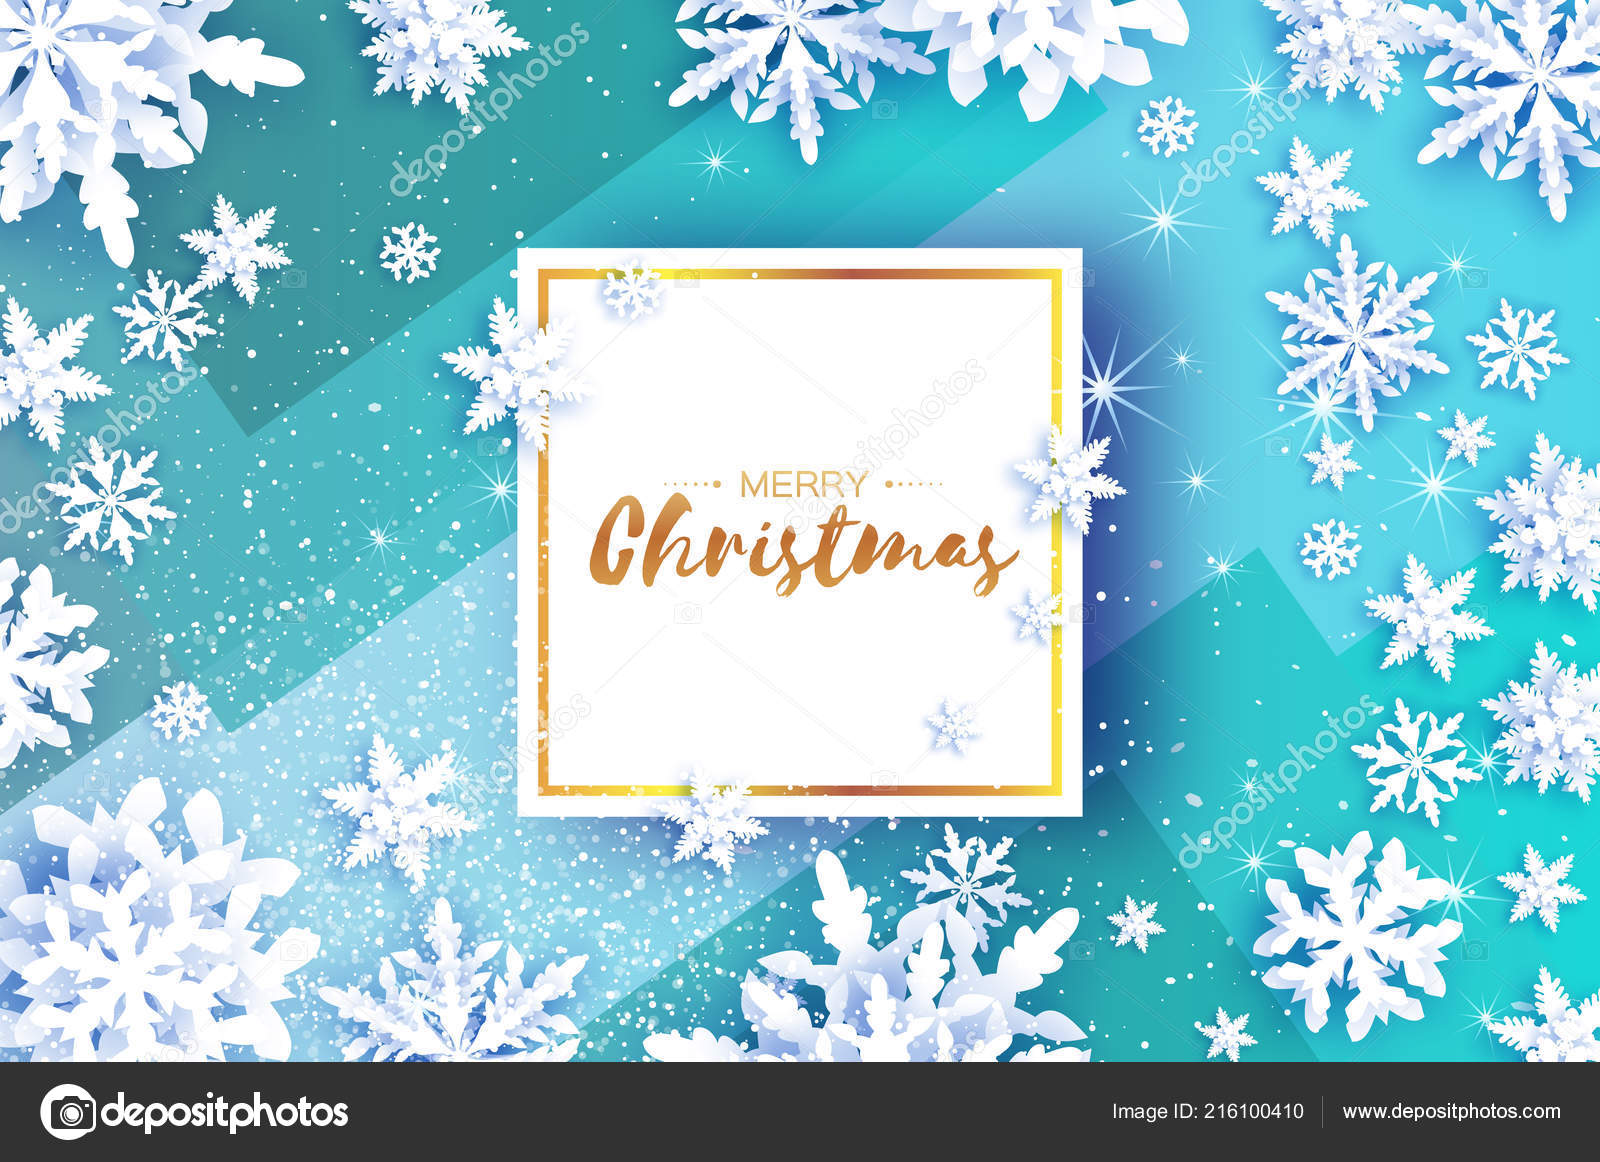 Merry christmas happy new year greetings card white paper cut merry christmas happy new year greetings card white paper cut stock vector m4hsunfo